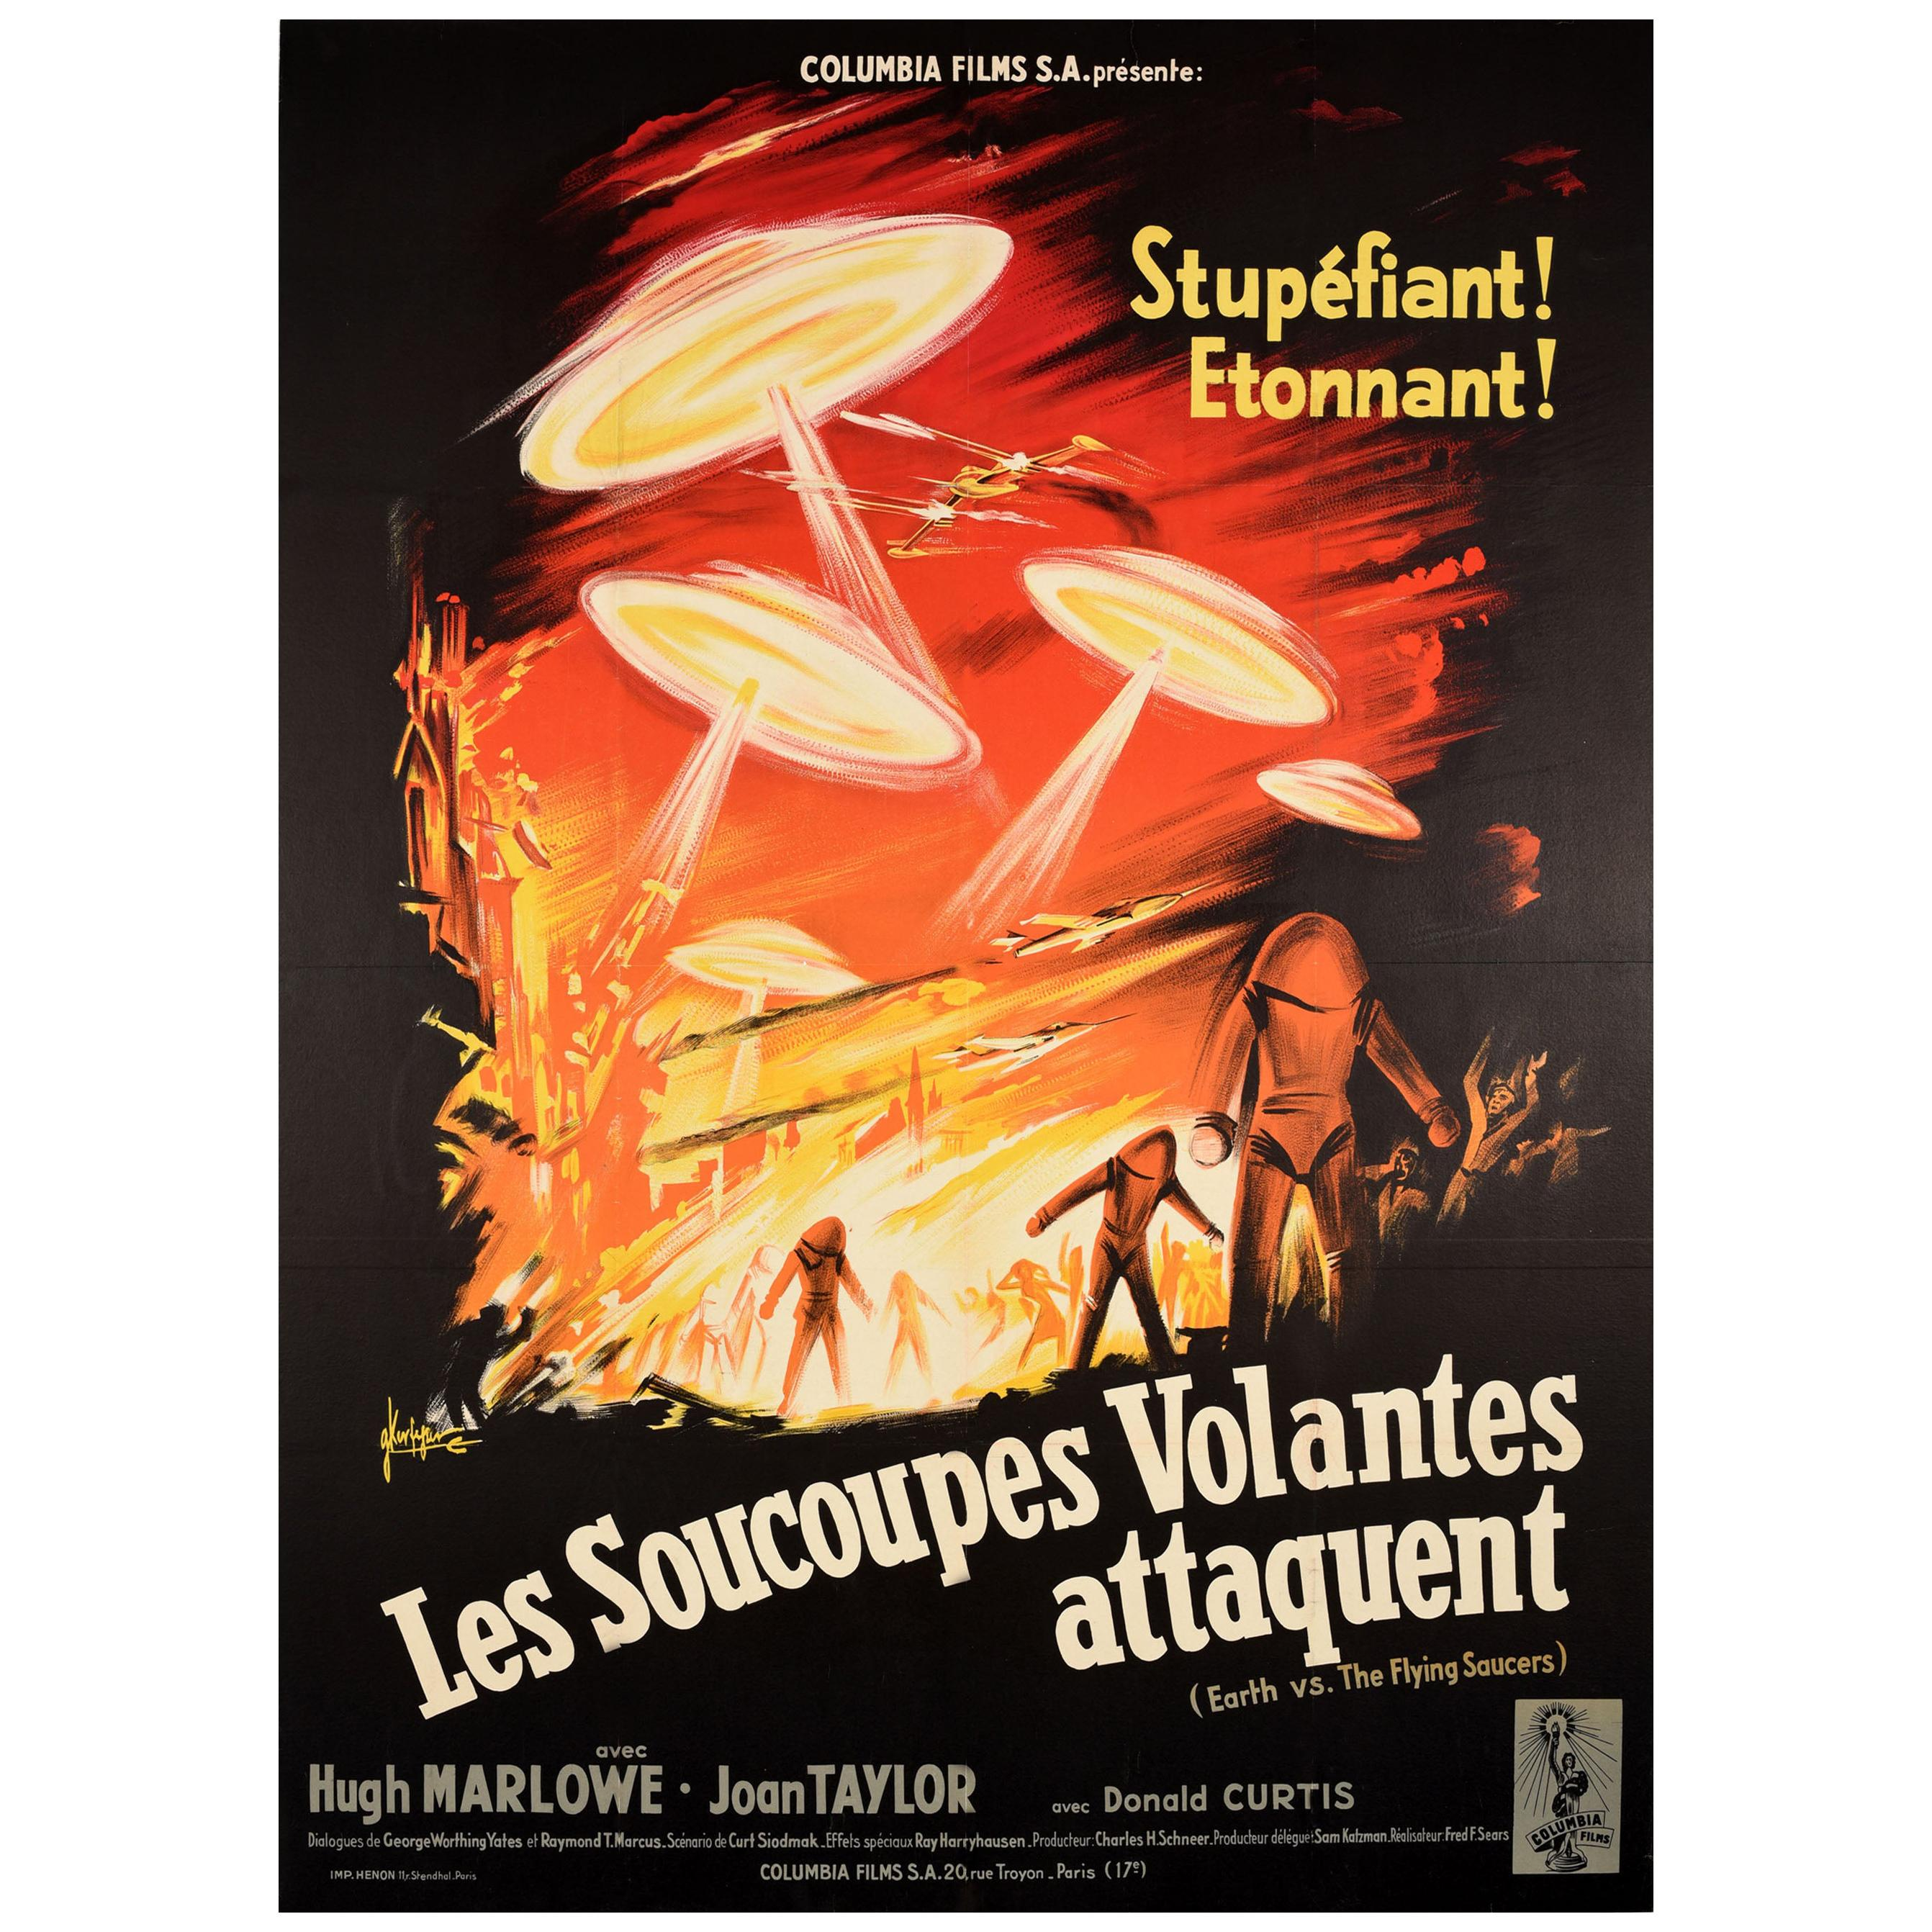 Original Vintage Science Fiction Film Poster Earth vs. the Flying Saucers Sci-Fi